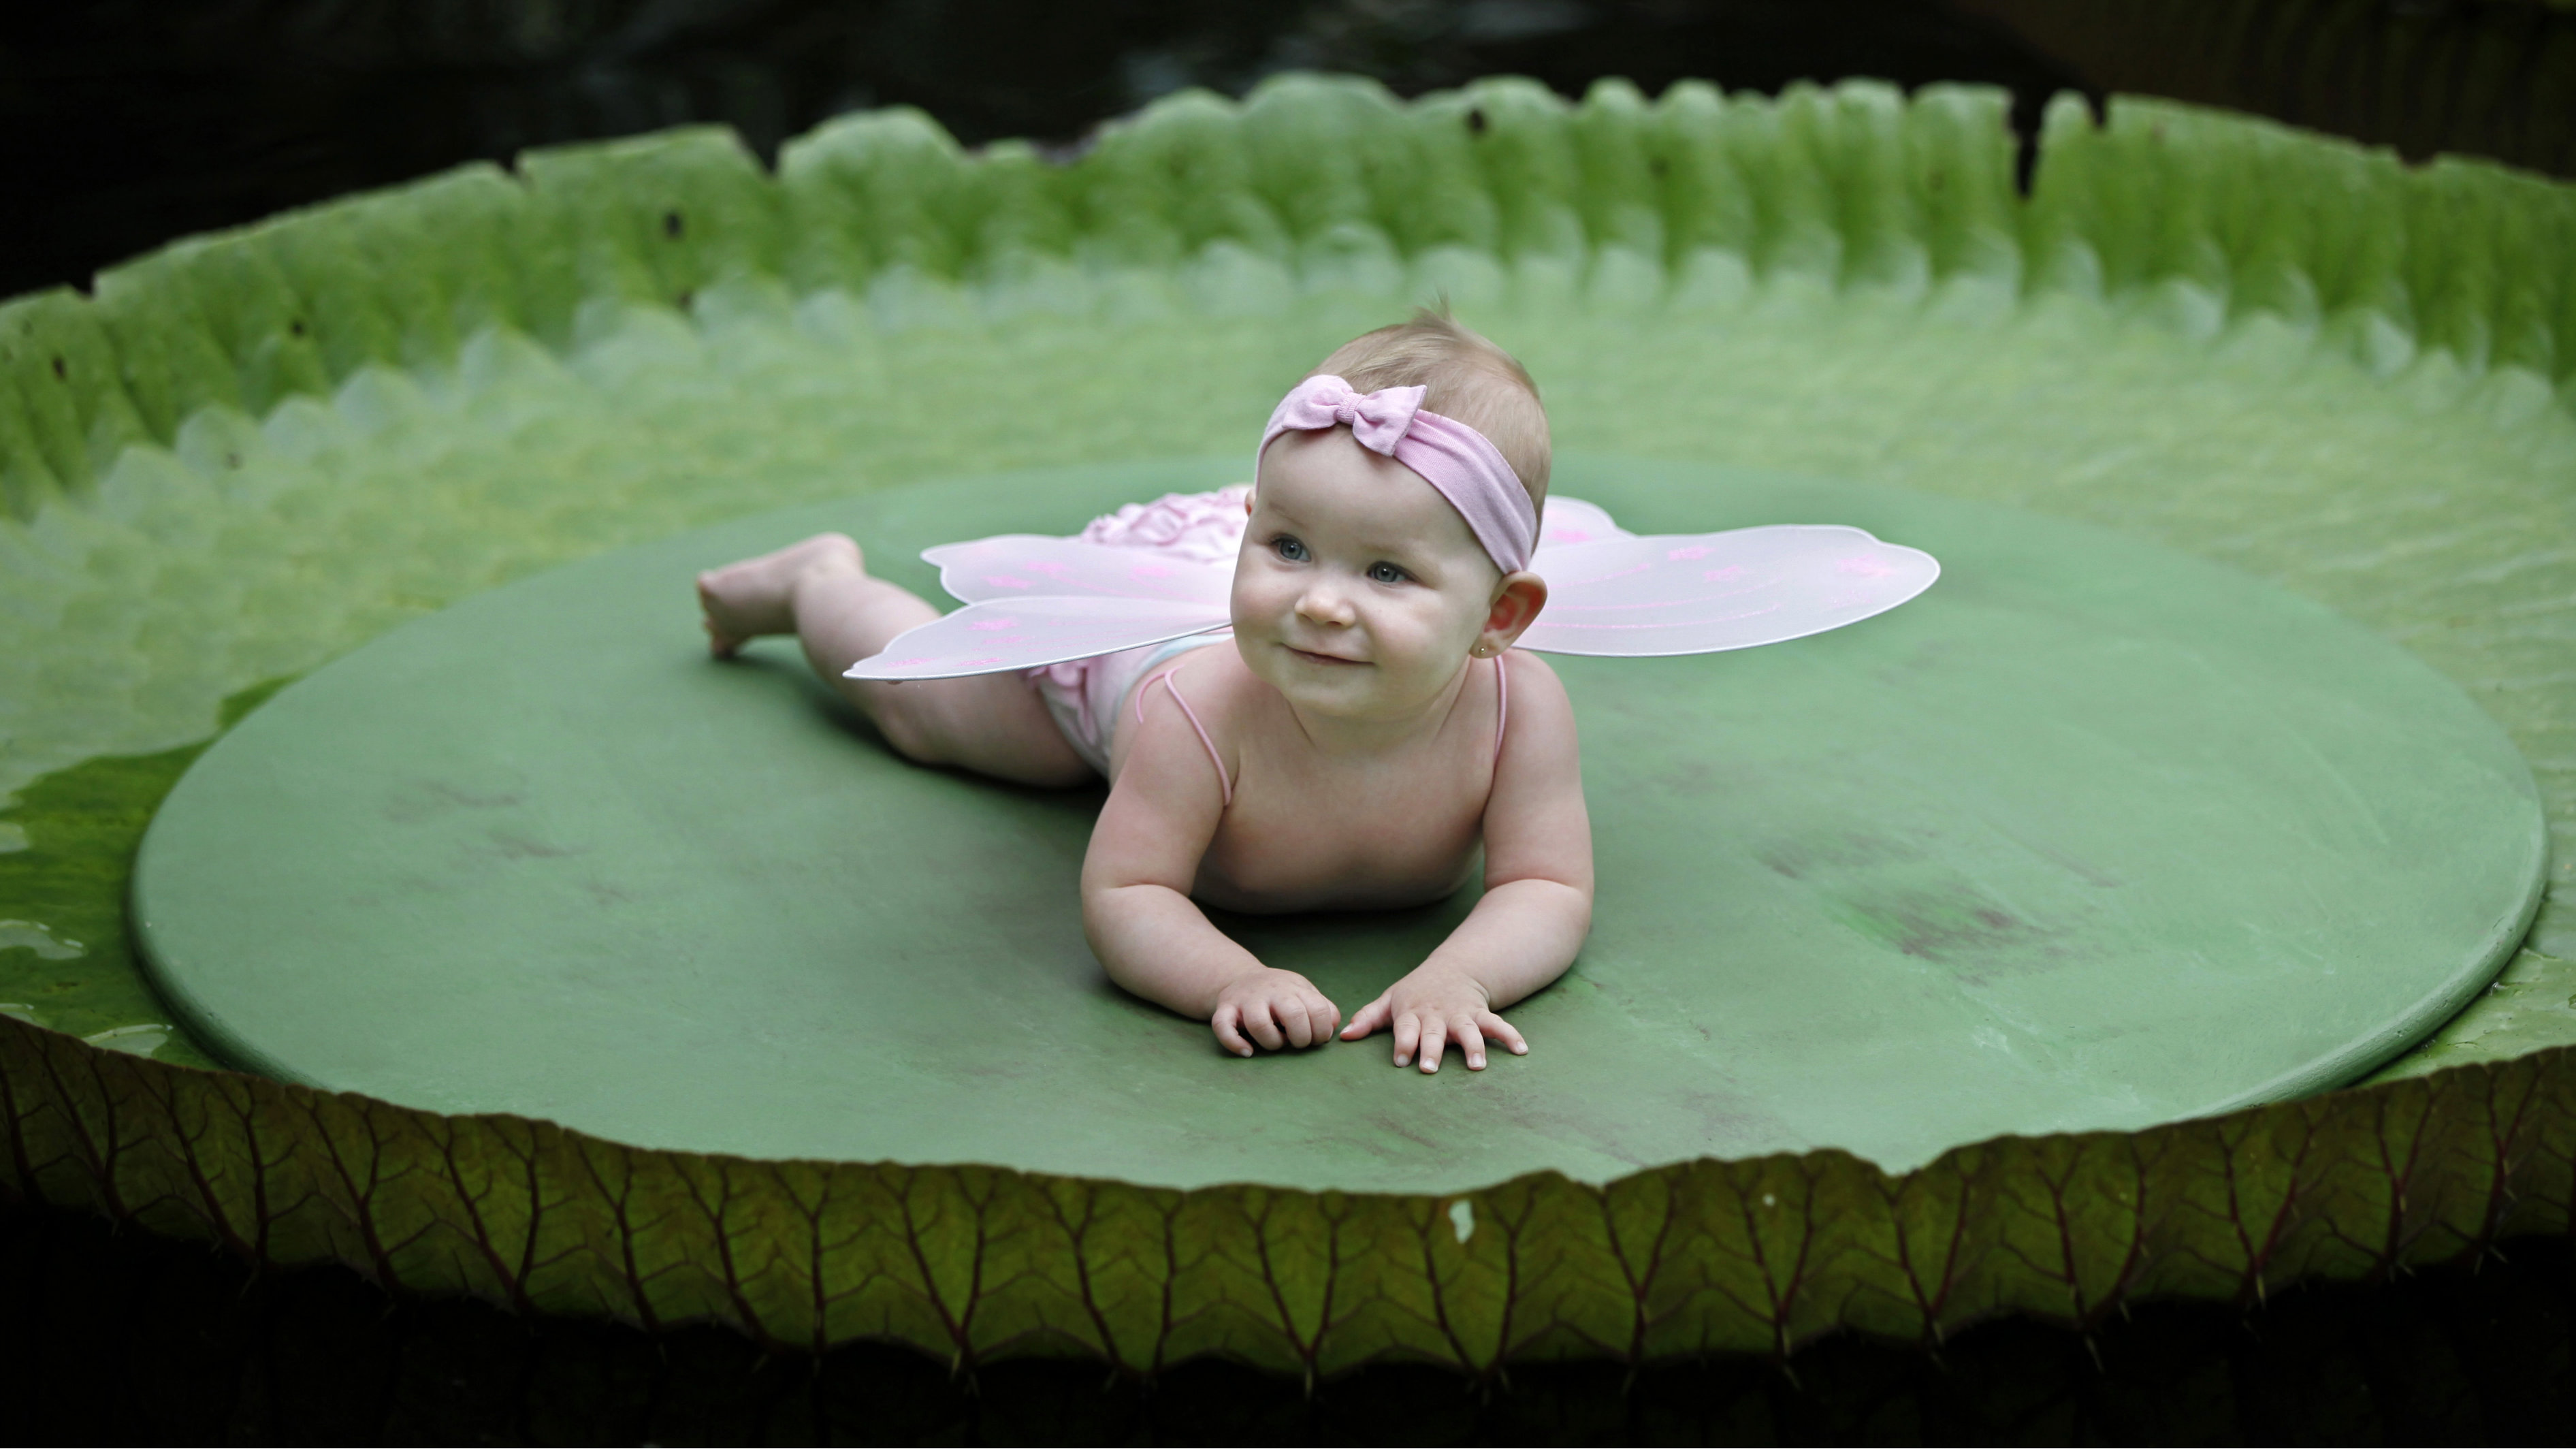 Seven-and-a-half-month old Tanisha Overbeeke smiles while resting on top of a leaf of the Victoria Amazonica at the Rotterdam Blijdorp Zoo September 1, 2010. Children could be photographed on top of the leaf, under the condition that they do not weigh more than 15 kg (33 lbs). The Victoria Amazonica blossoms over two nights producing flowers that are white on the first night, which then turn pinkish-red by the second night. Its leaf could have a diameter of up to two-and-a-half meters.